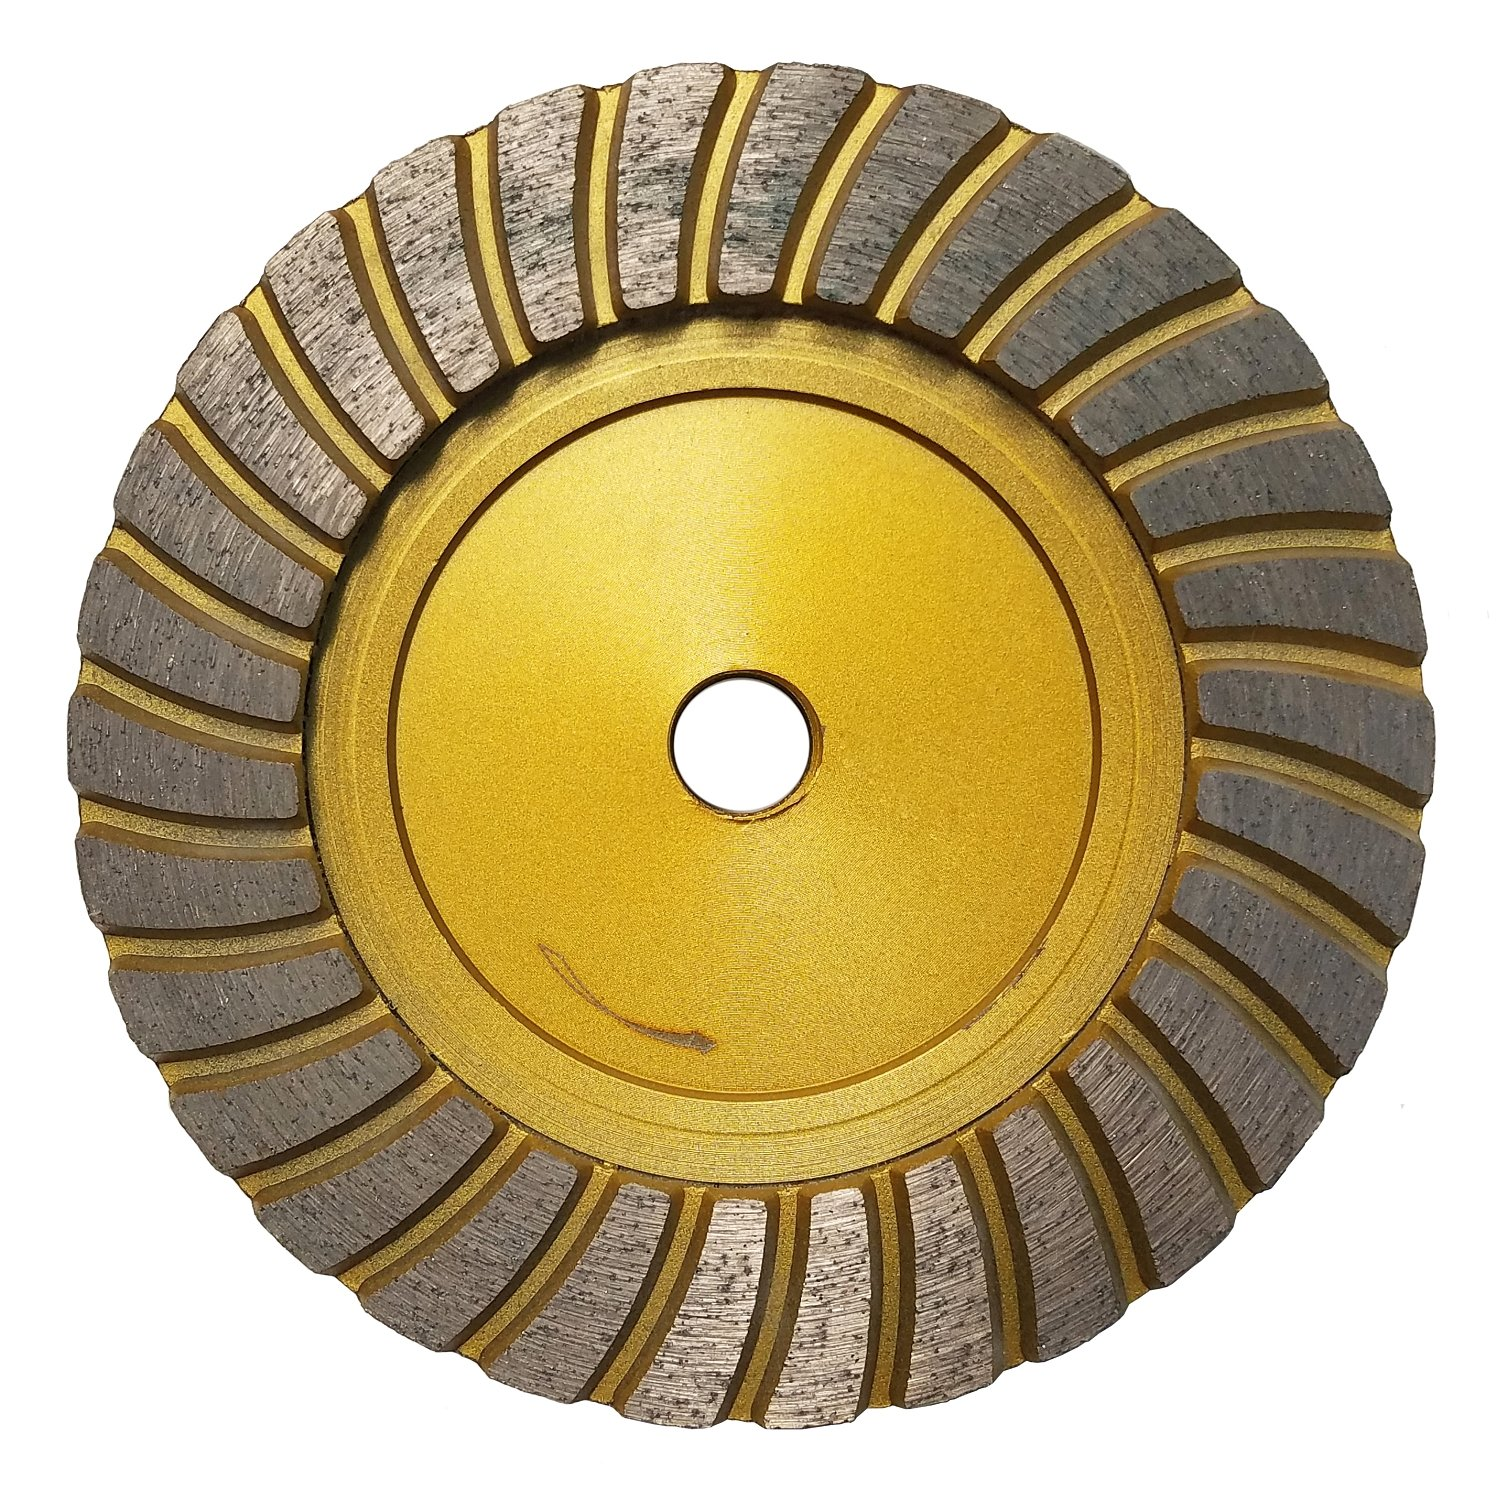 Concord Blades GCT060FFHP 6 Inch Fine Grit Turbo Cup Wheel for Granite and Marble